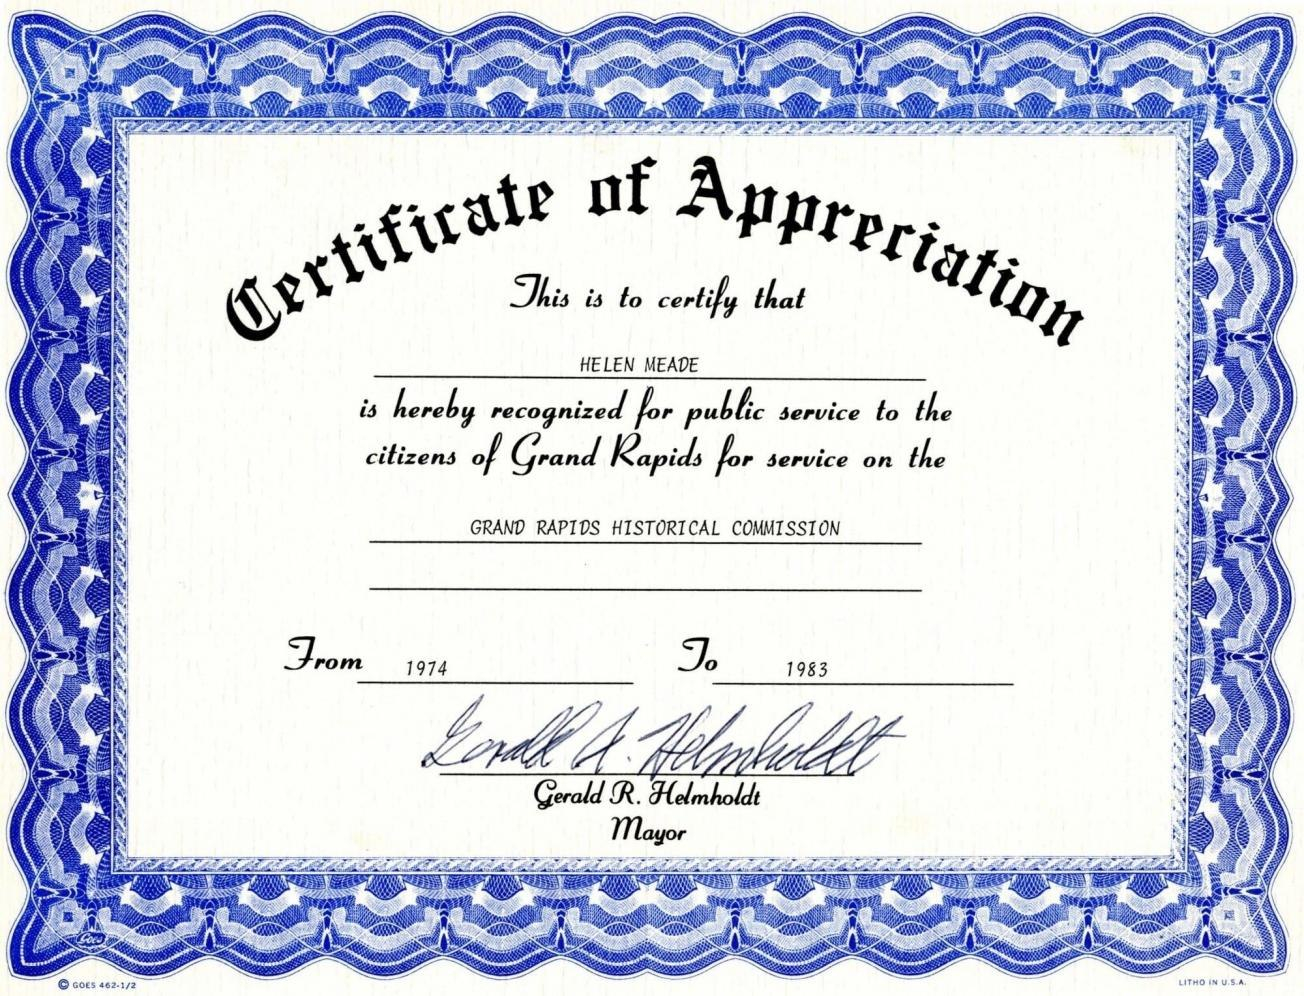 Perfect Attendance Certificate Template Word In Perfect Attendance Certificate Free Template